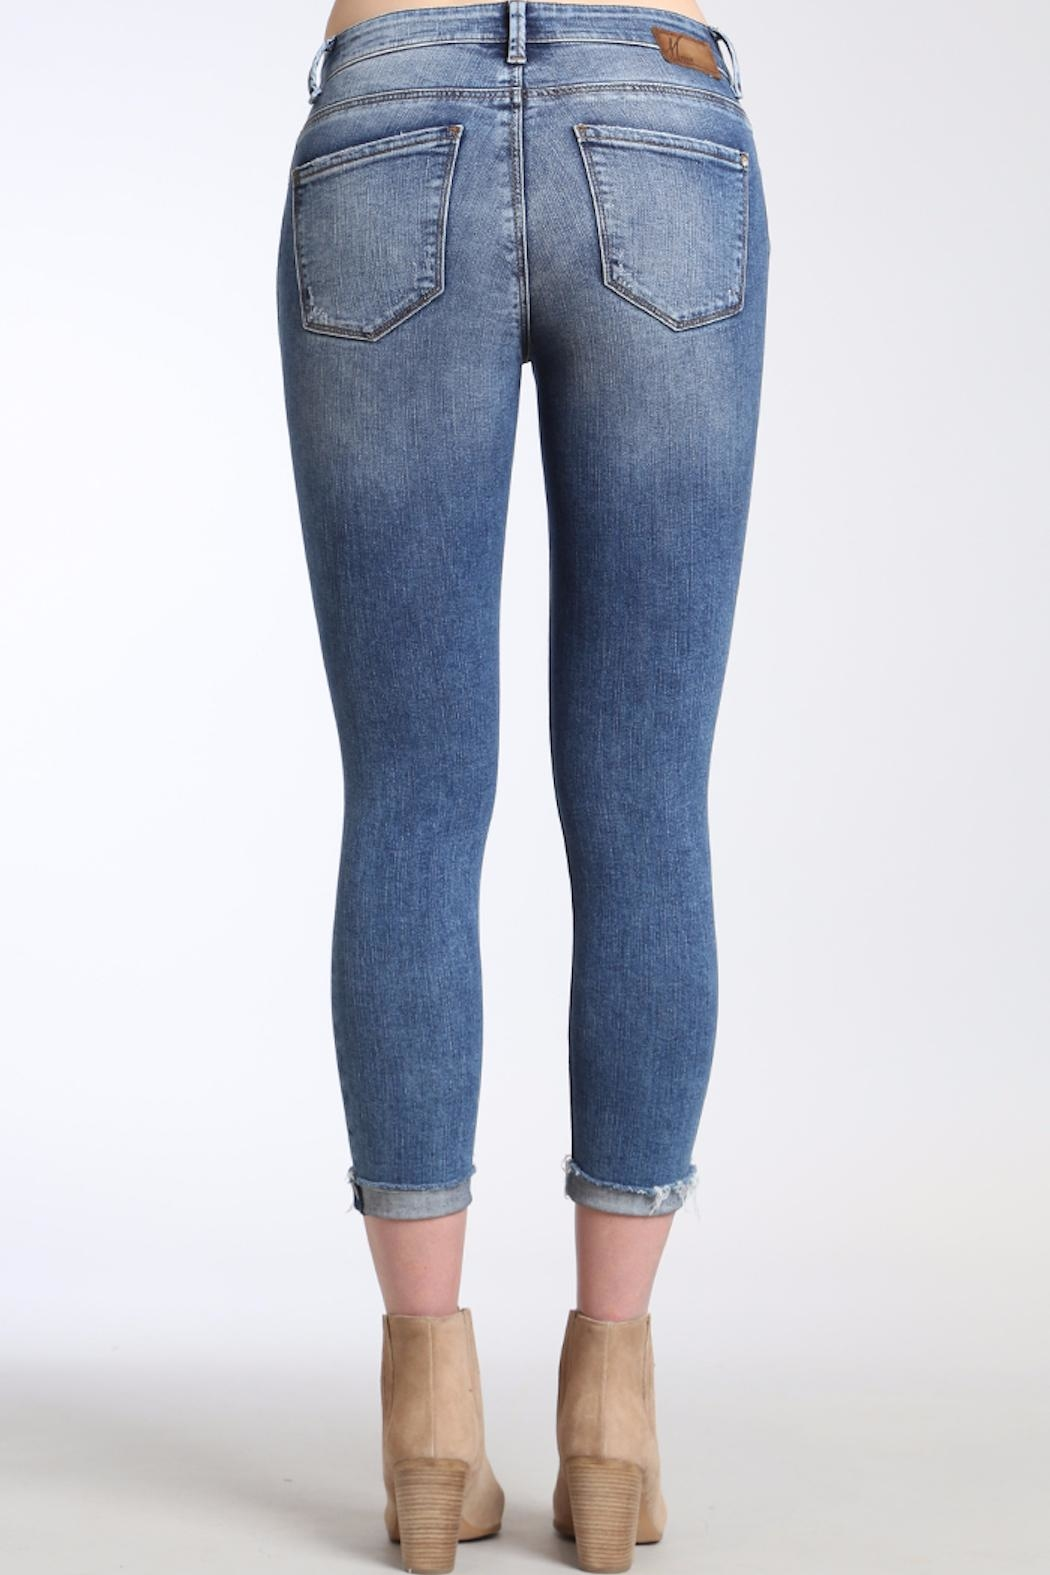 Apricot Lane St. Cloud High Rise Skinny Jeans - Side Cropped Image